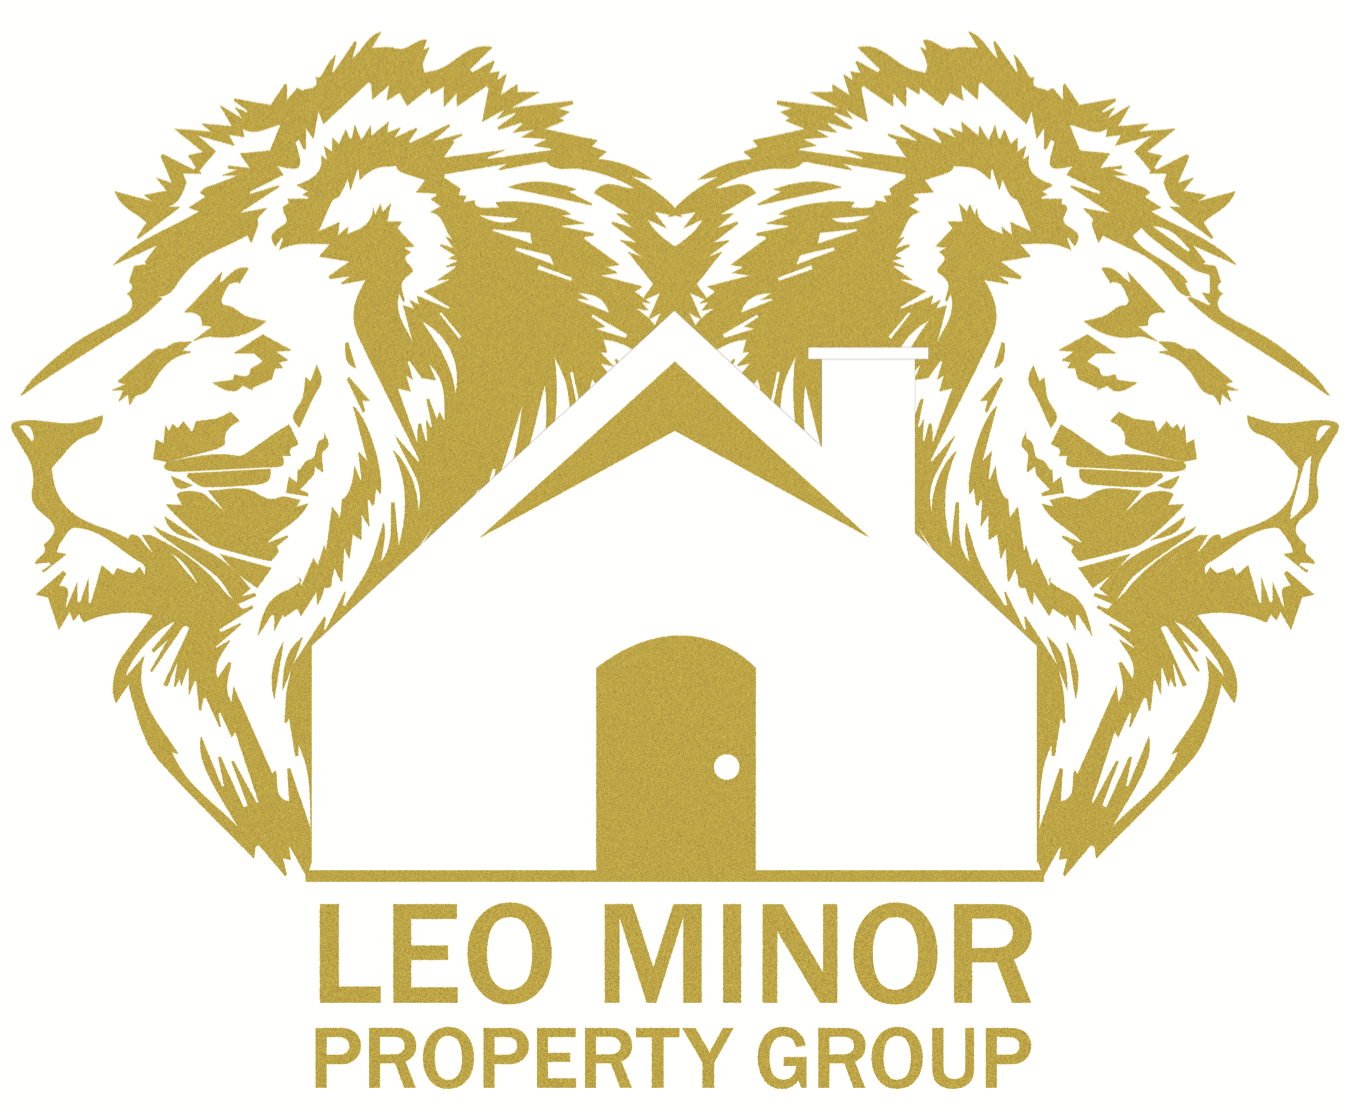 Leo Minor Property Group LLC  logo